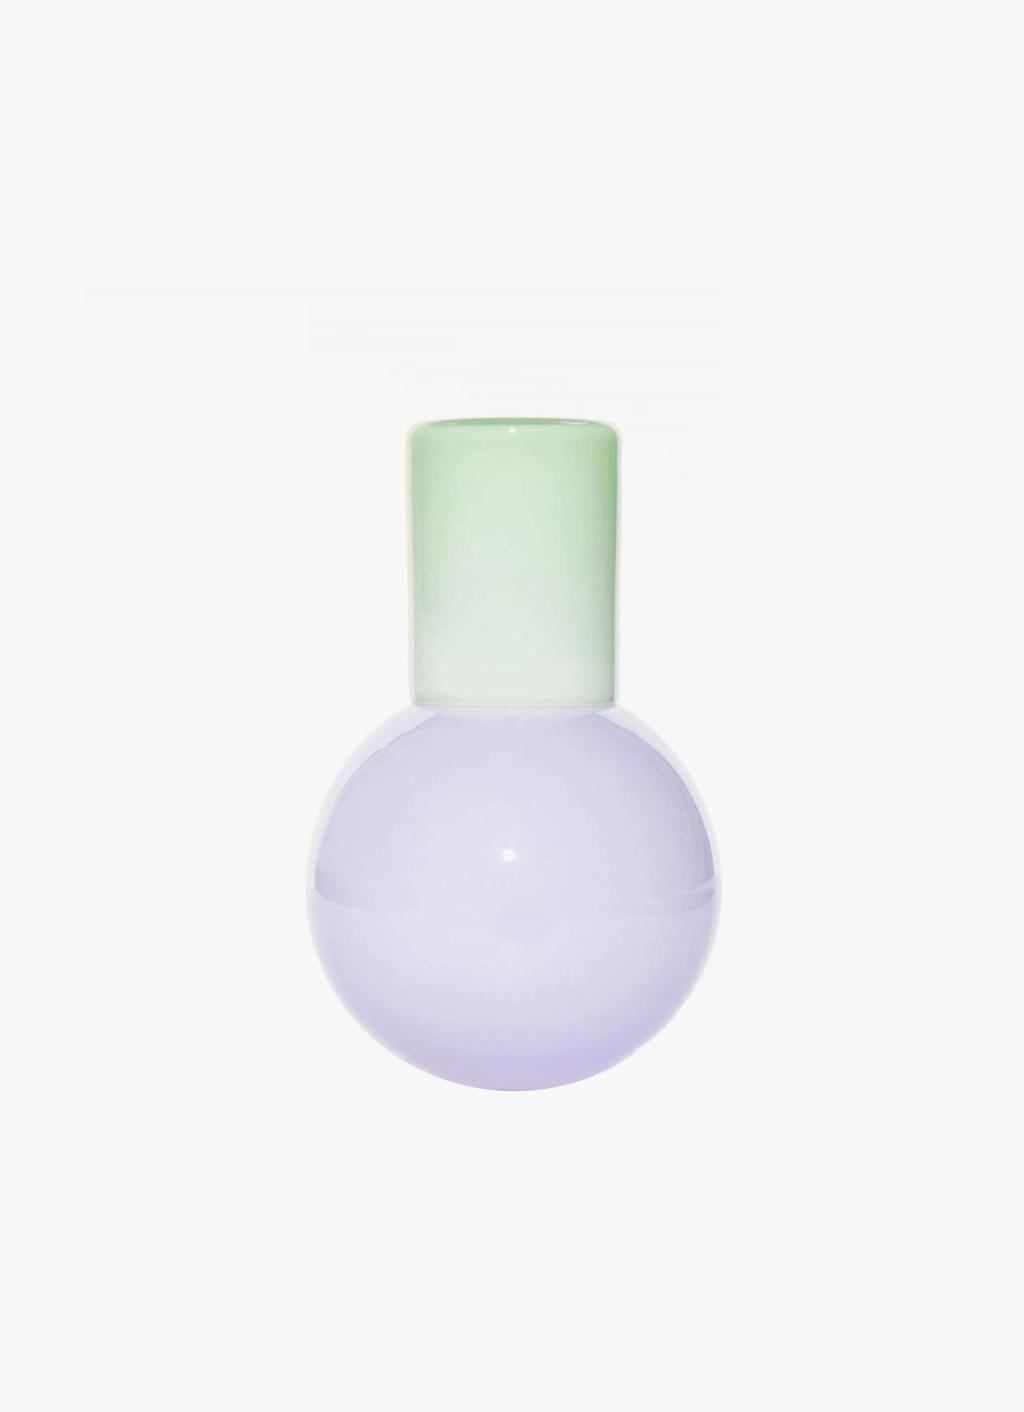 Anna Karlin - Bedside Carafe - Purple and Mint